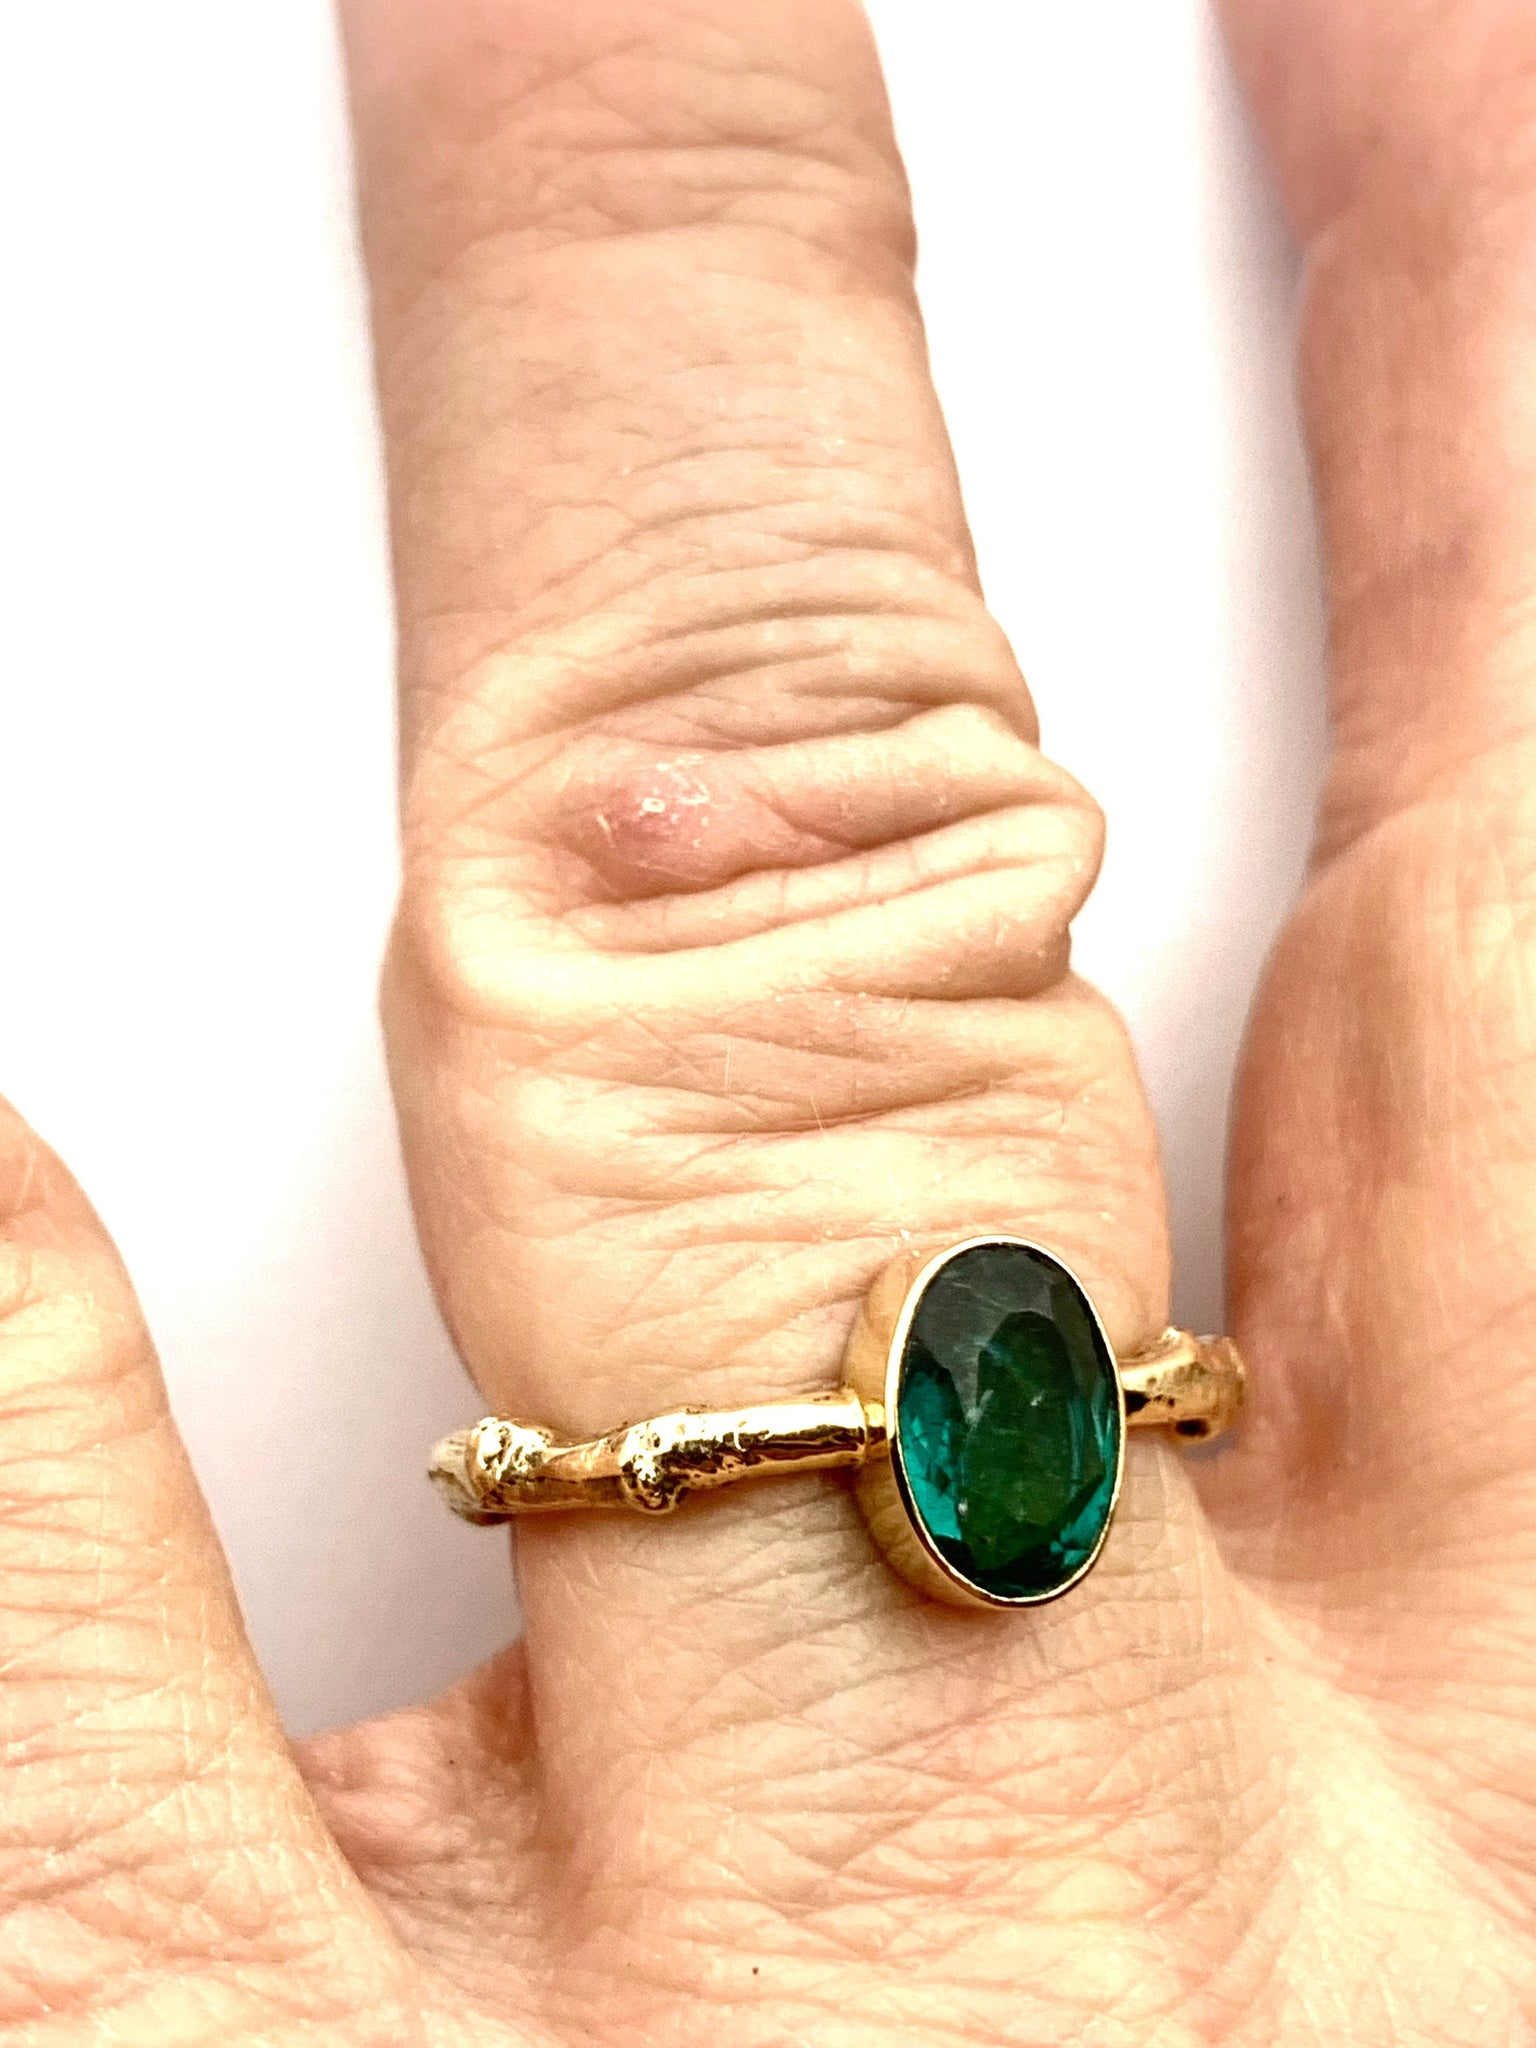 Green Tourmaline Ring 14k Gold, Statement Ring, Friendship Ring, Alternate Engagement Ring, OOAK gold gemstone ring, October Birthstone Ring